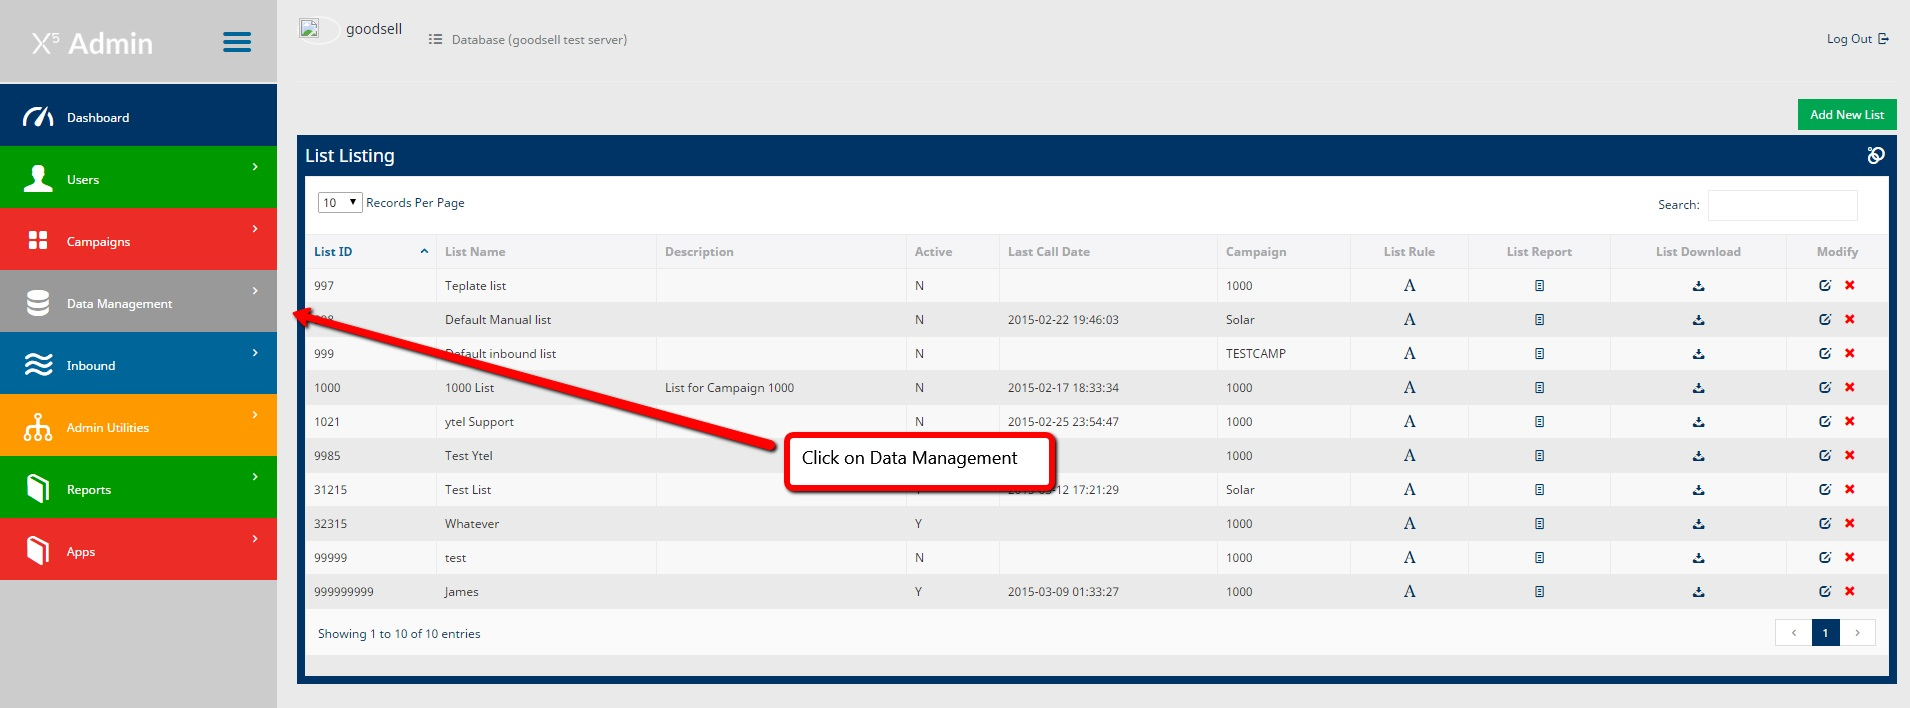 Data management and listing